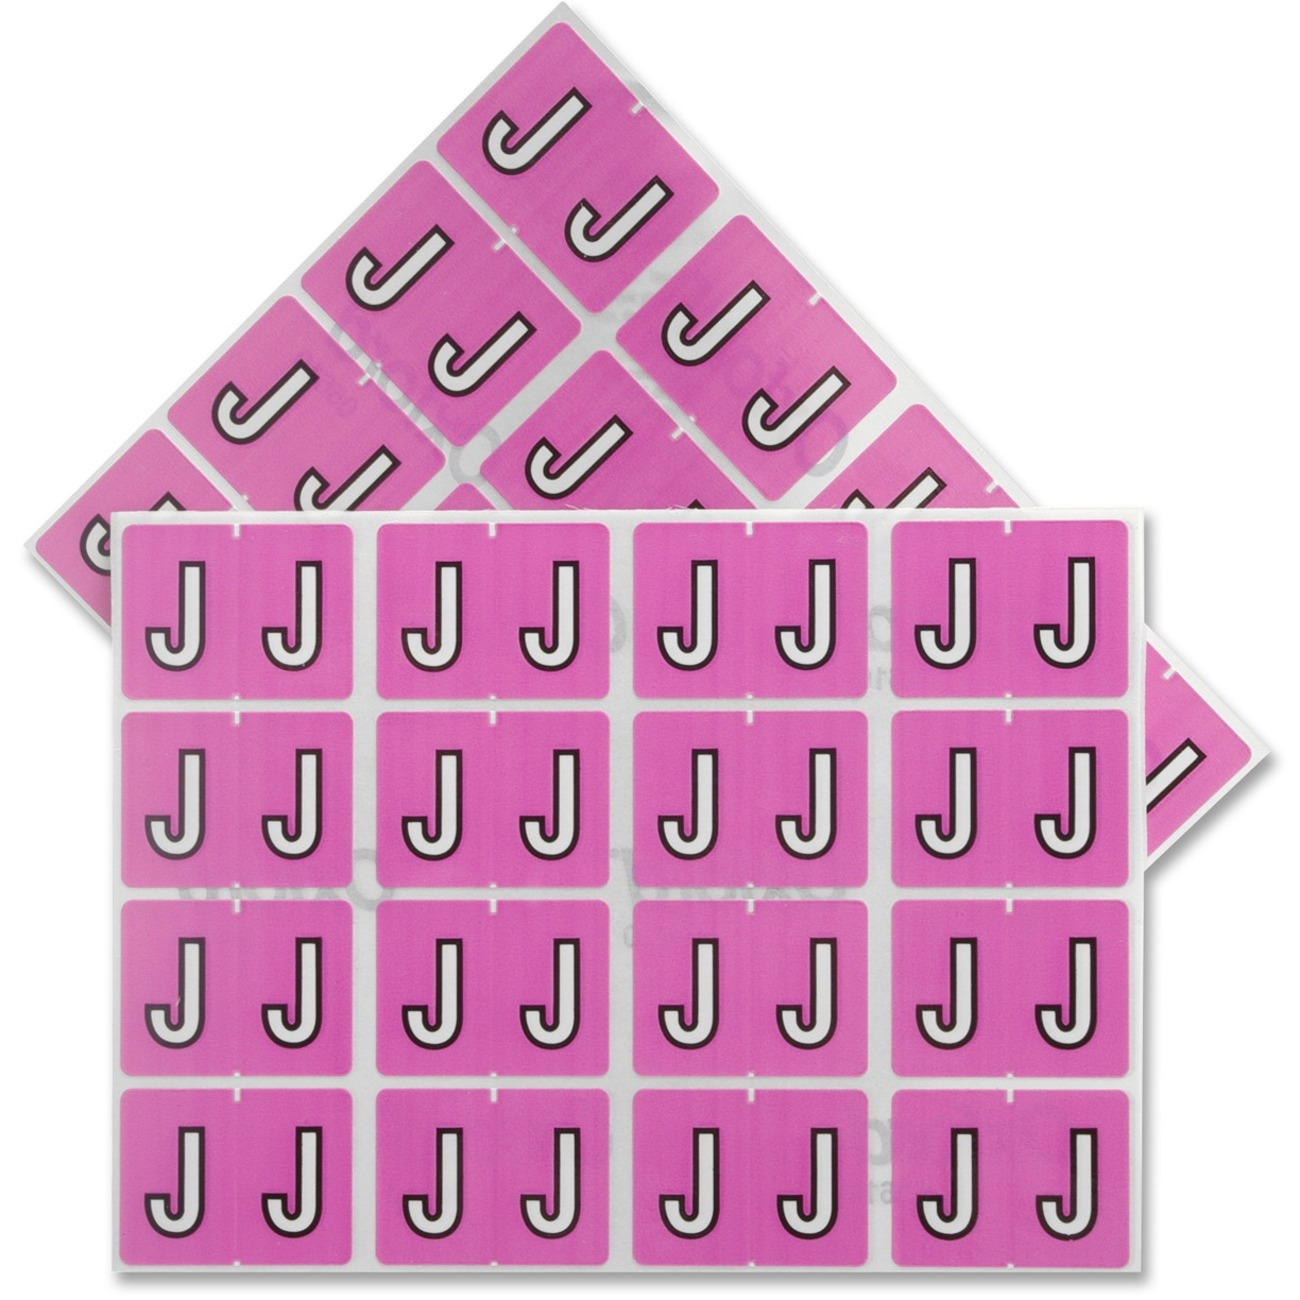 West Coast Office Supplies :: Office Supplies :: Labels & Labeling ...